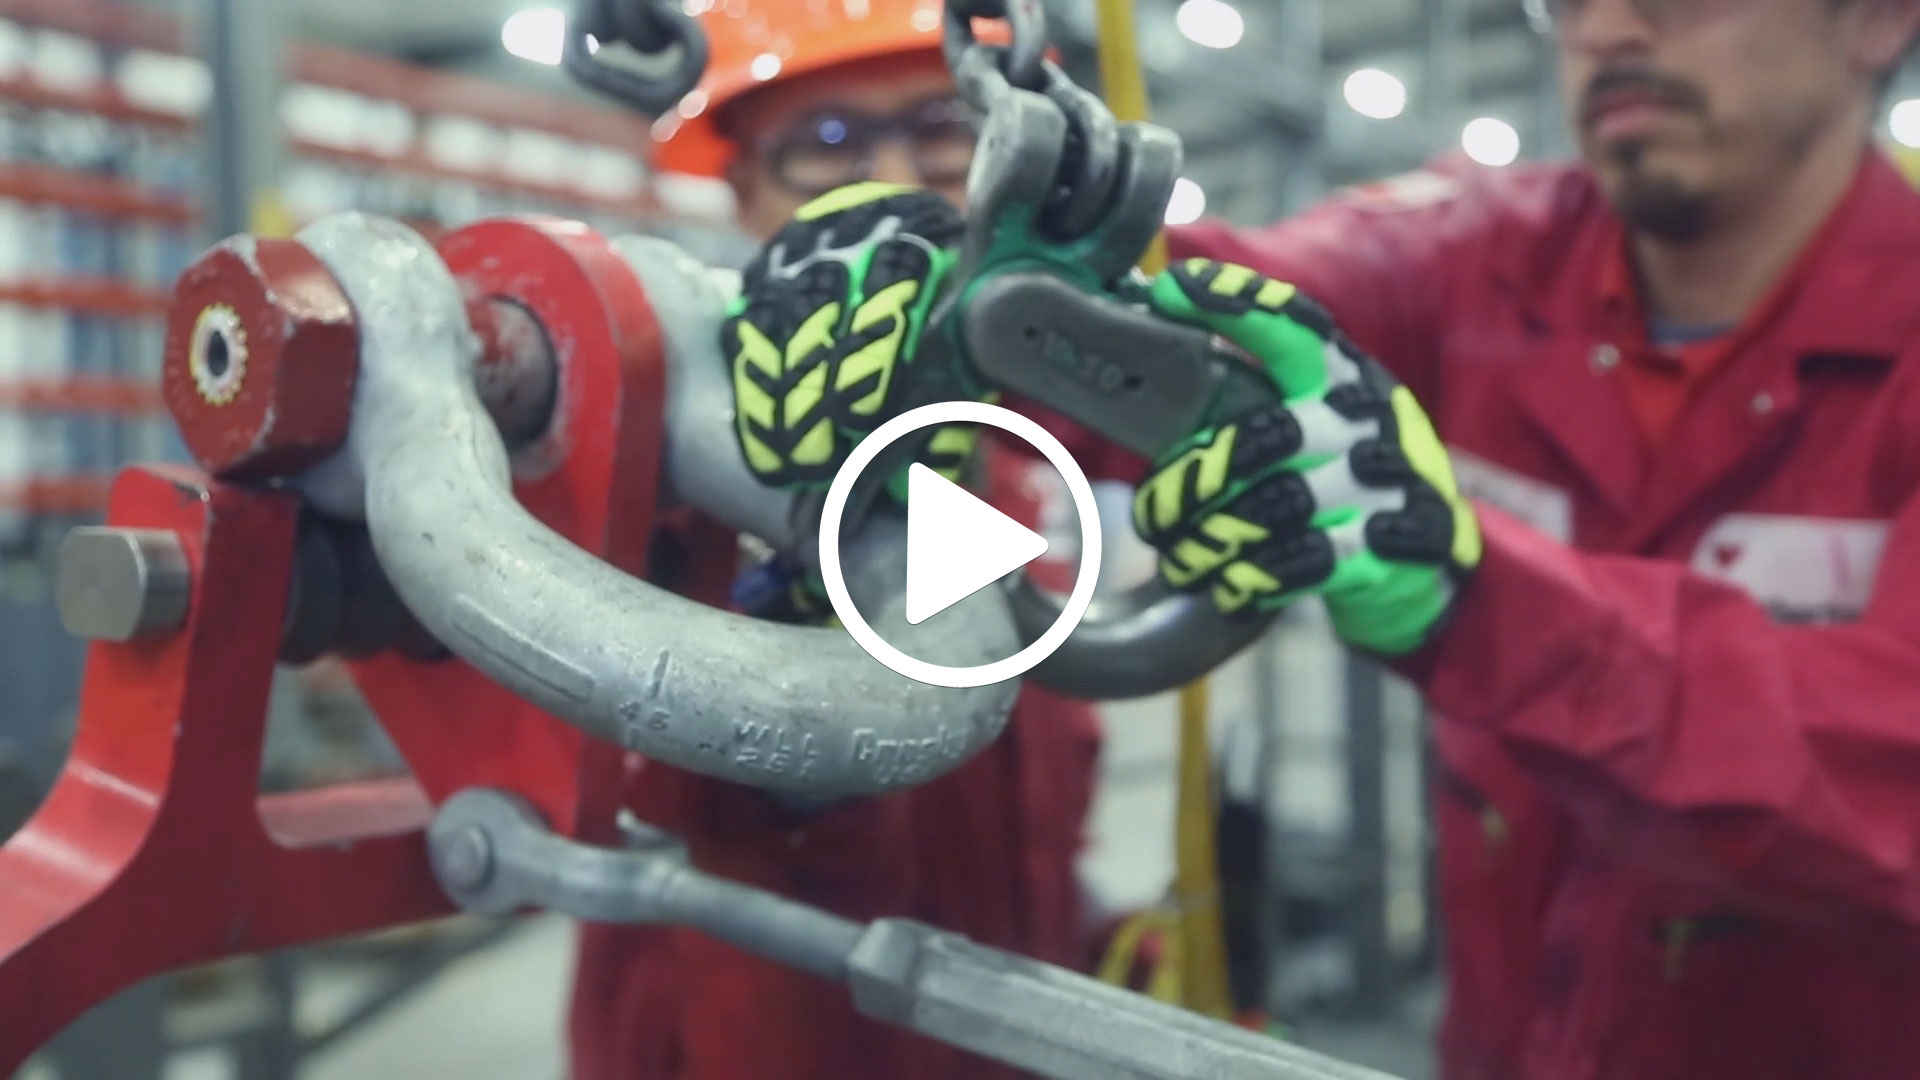 Watch our careers video for available job opening Field Service Technician 1 - Pumping Units in San Antonio, TX